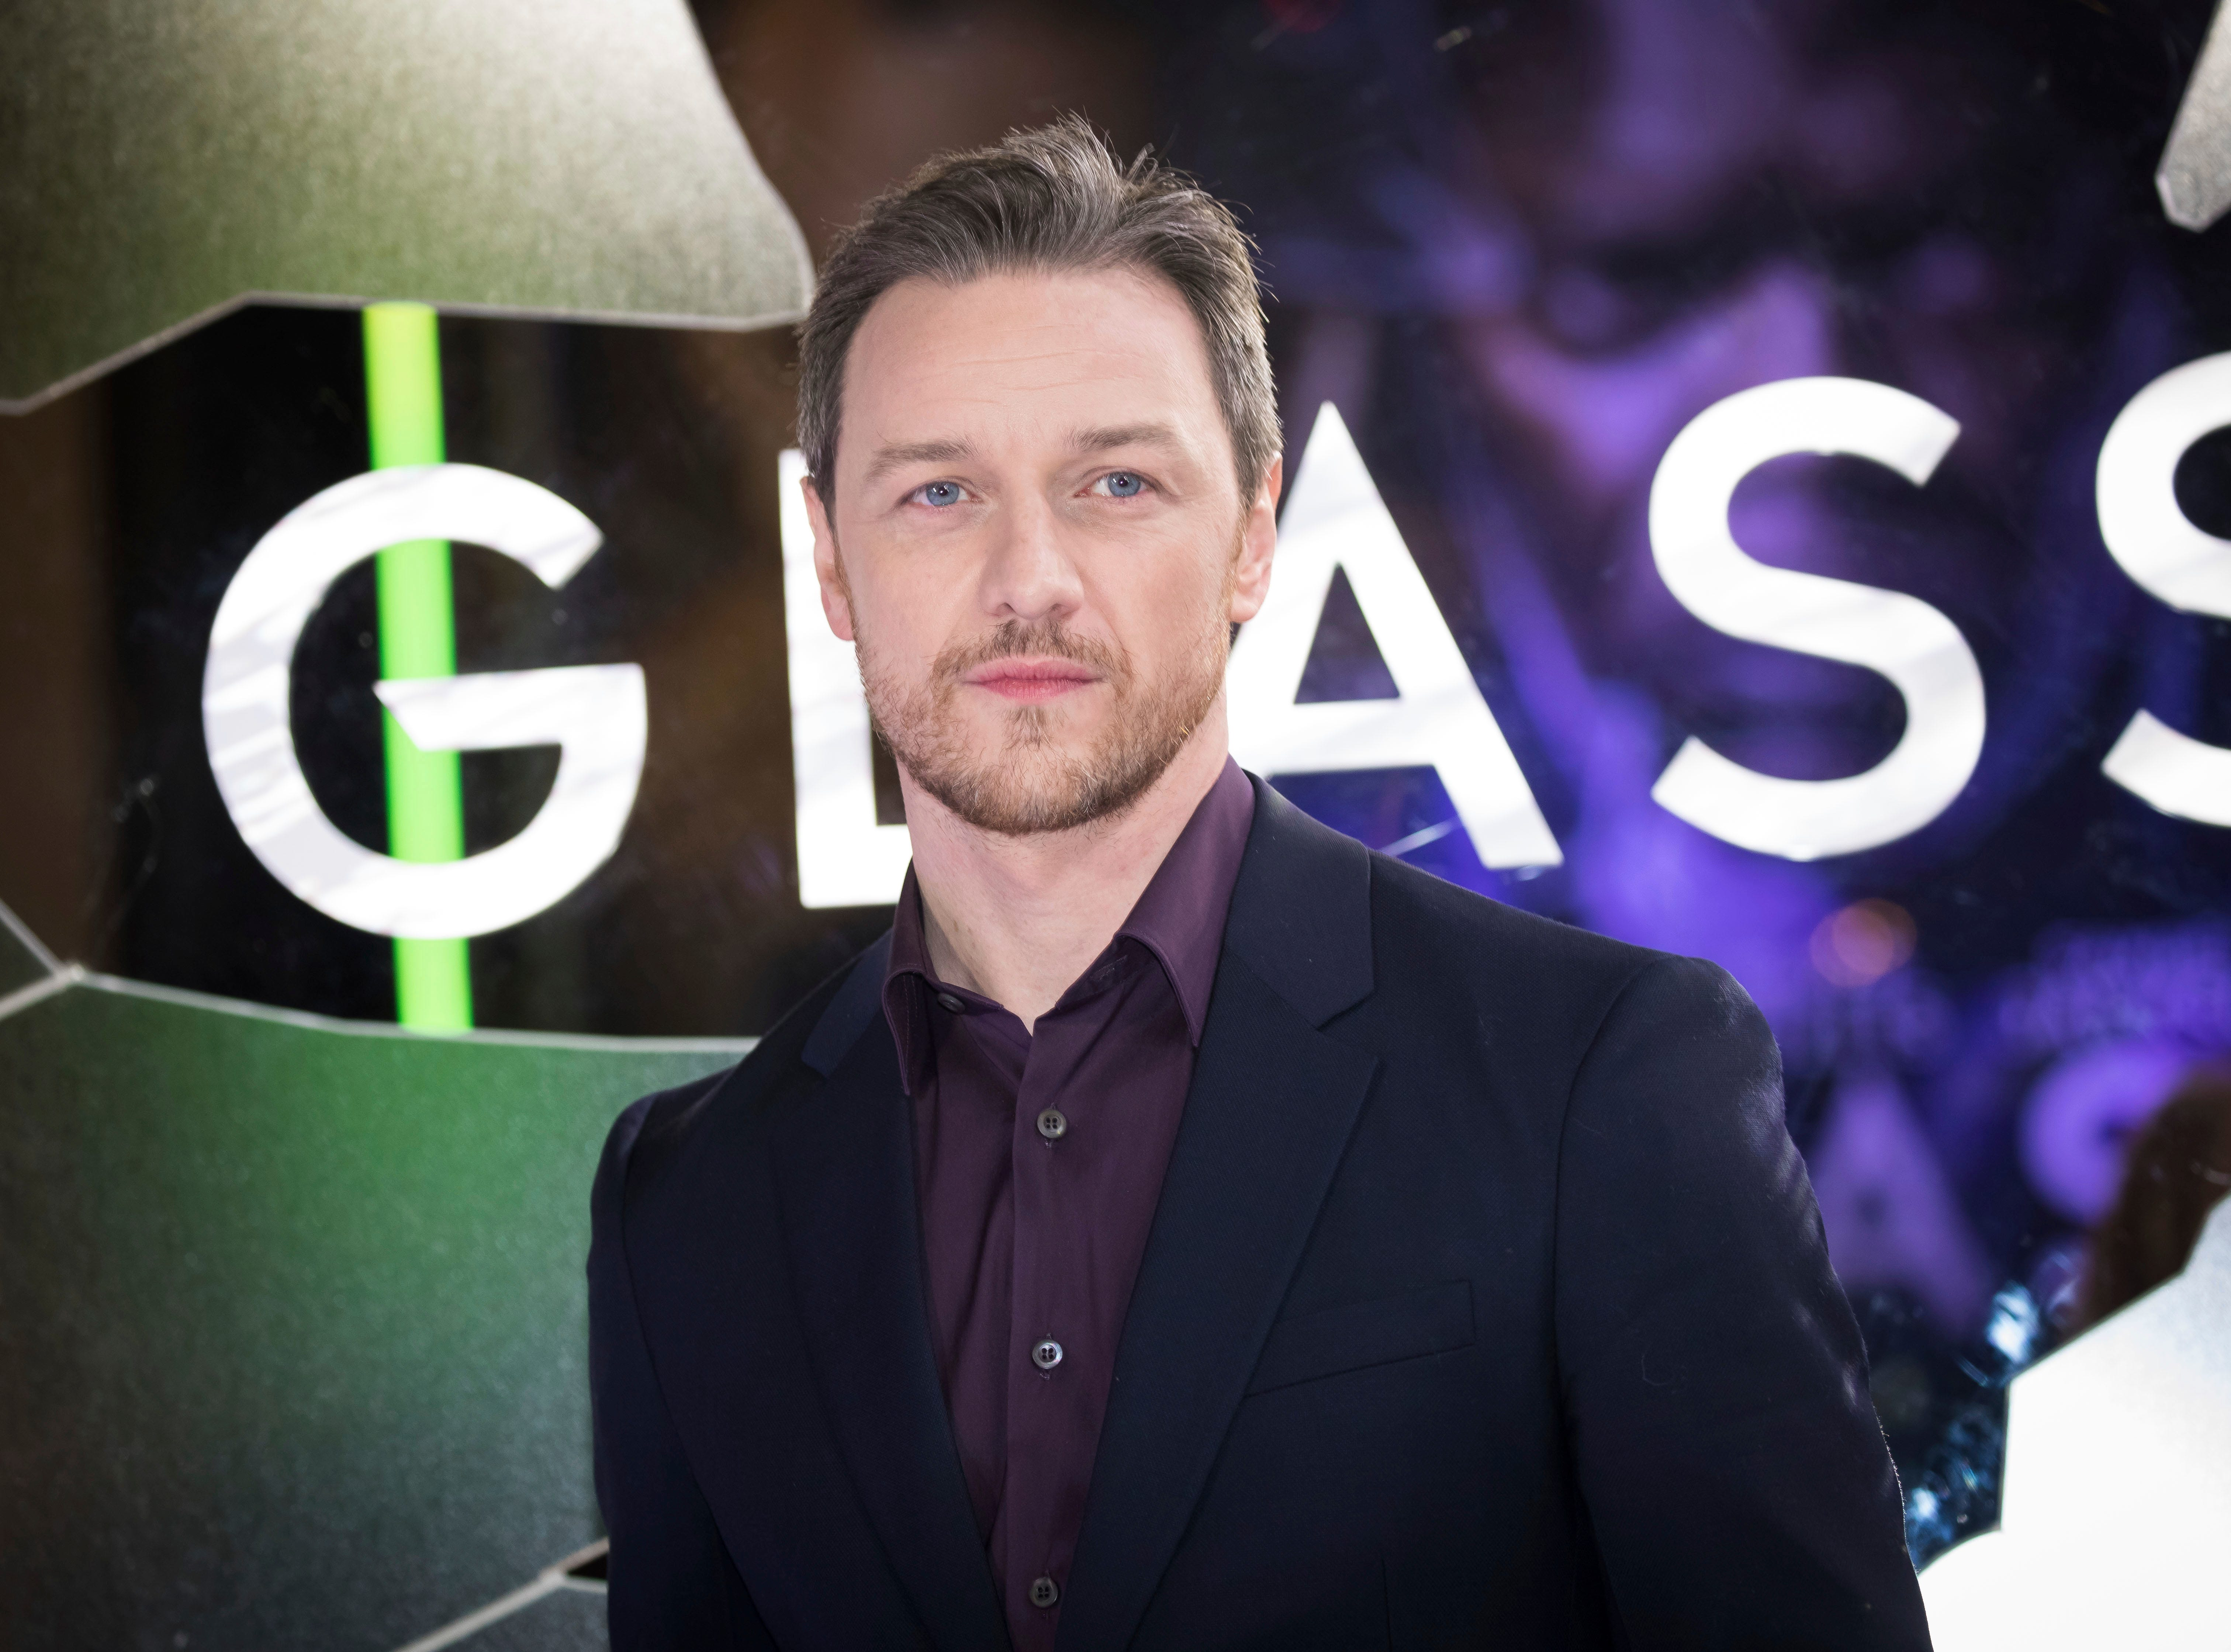 """Actor James McAvoy poses for photographers upon arrival at the premiere of the film """"Glass"""" in London on Wednesday, Jan. 9, 2019."""